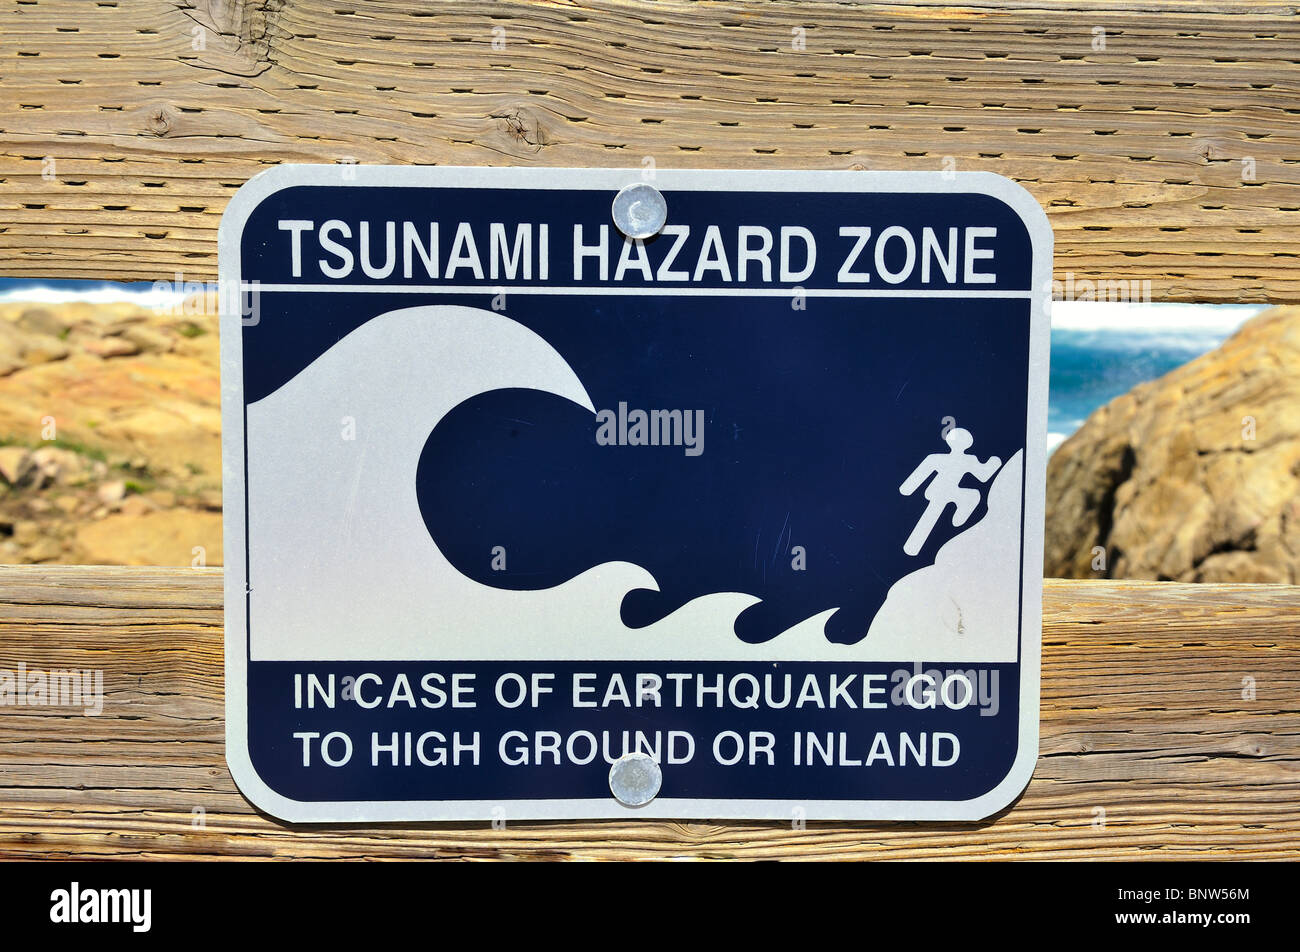 Tsunami Hazard Zone sign in case of earthquake go to high ground or inland Stock Photo